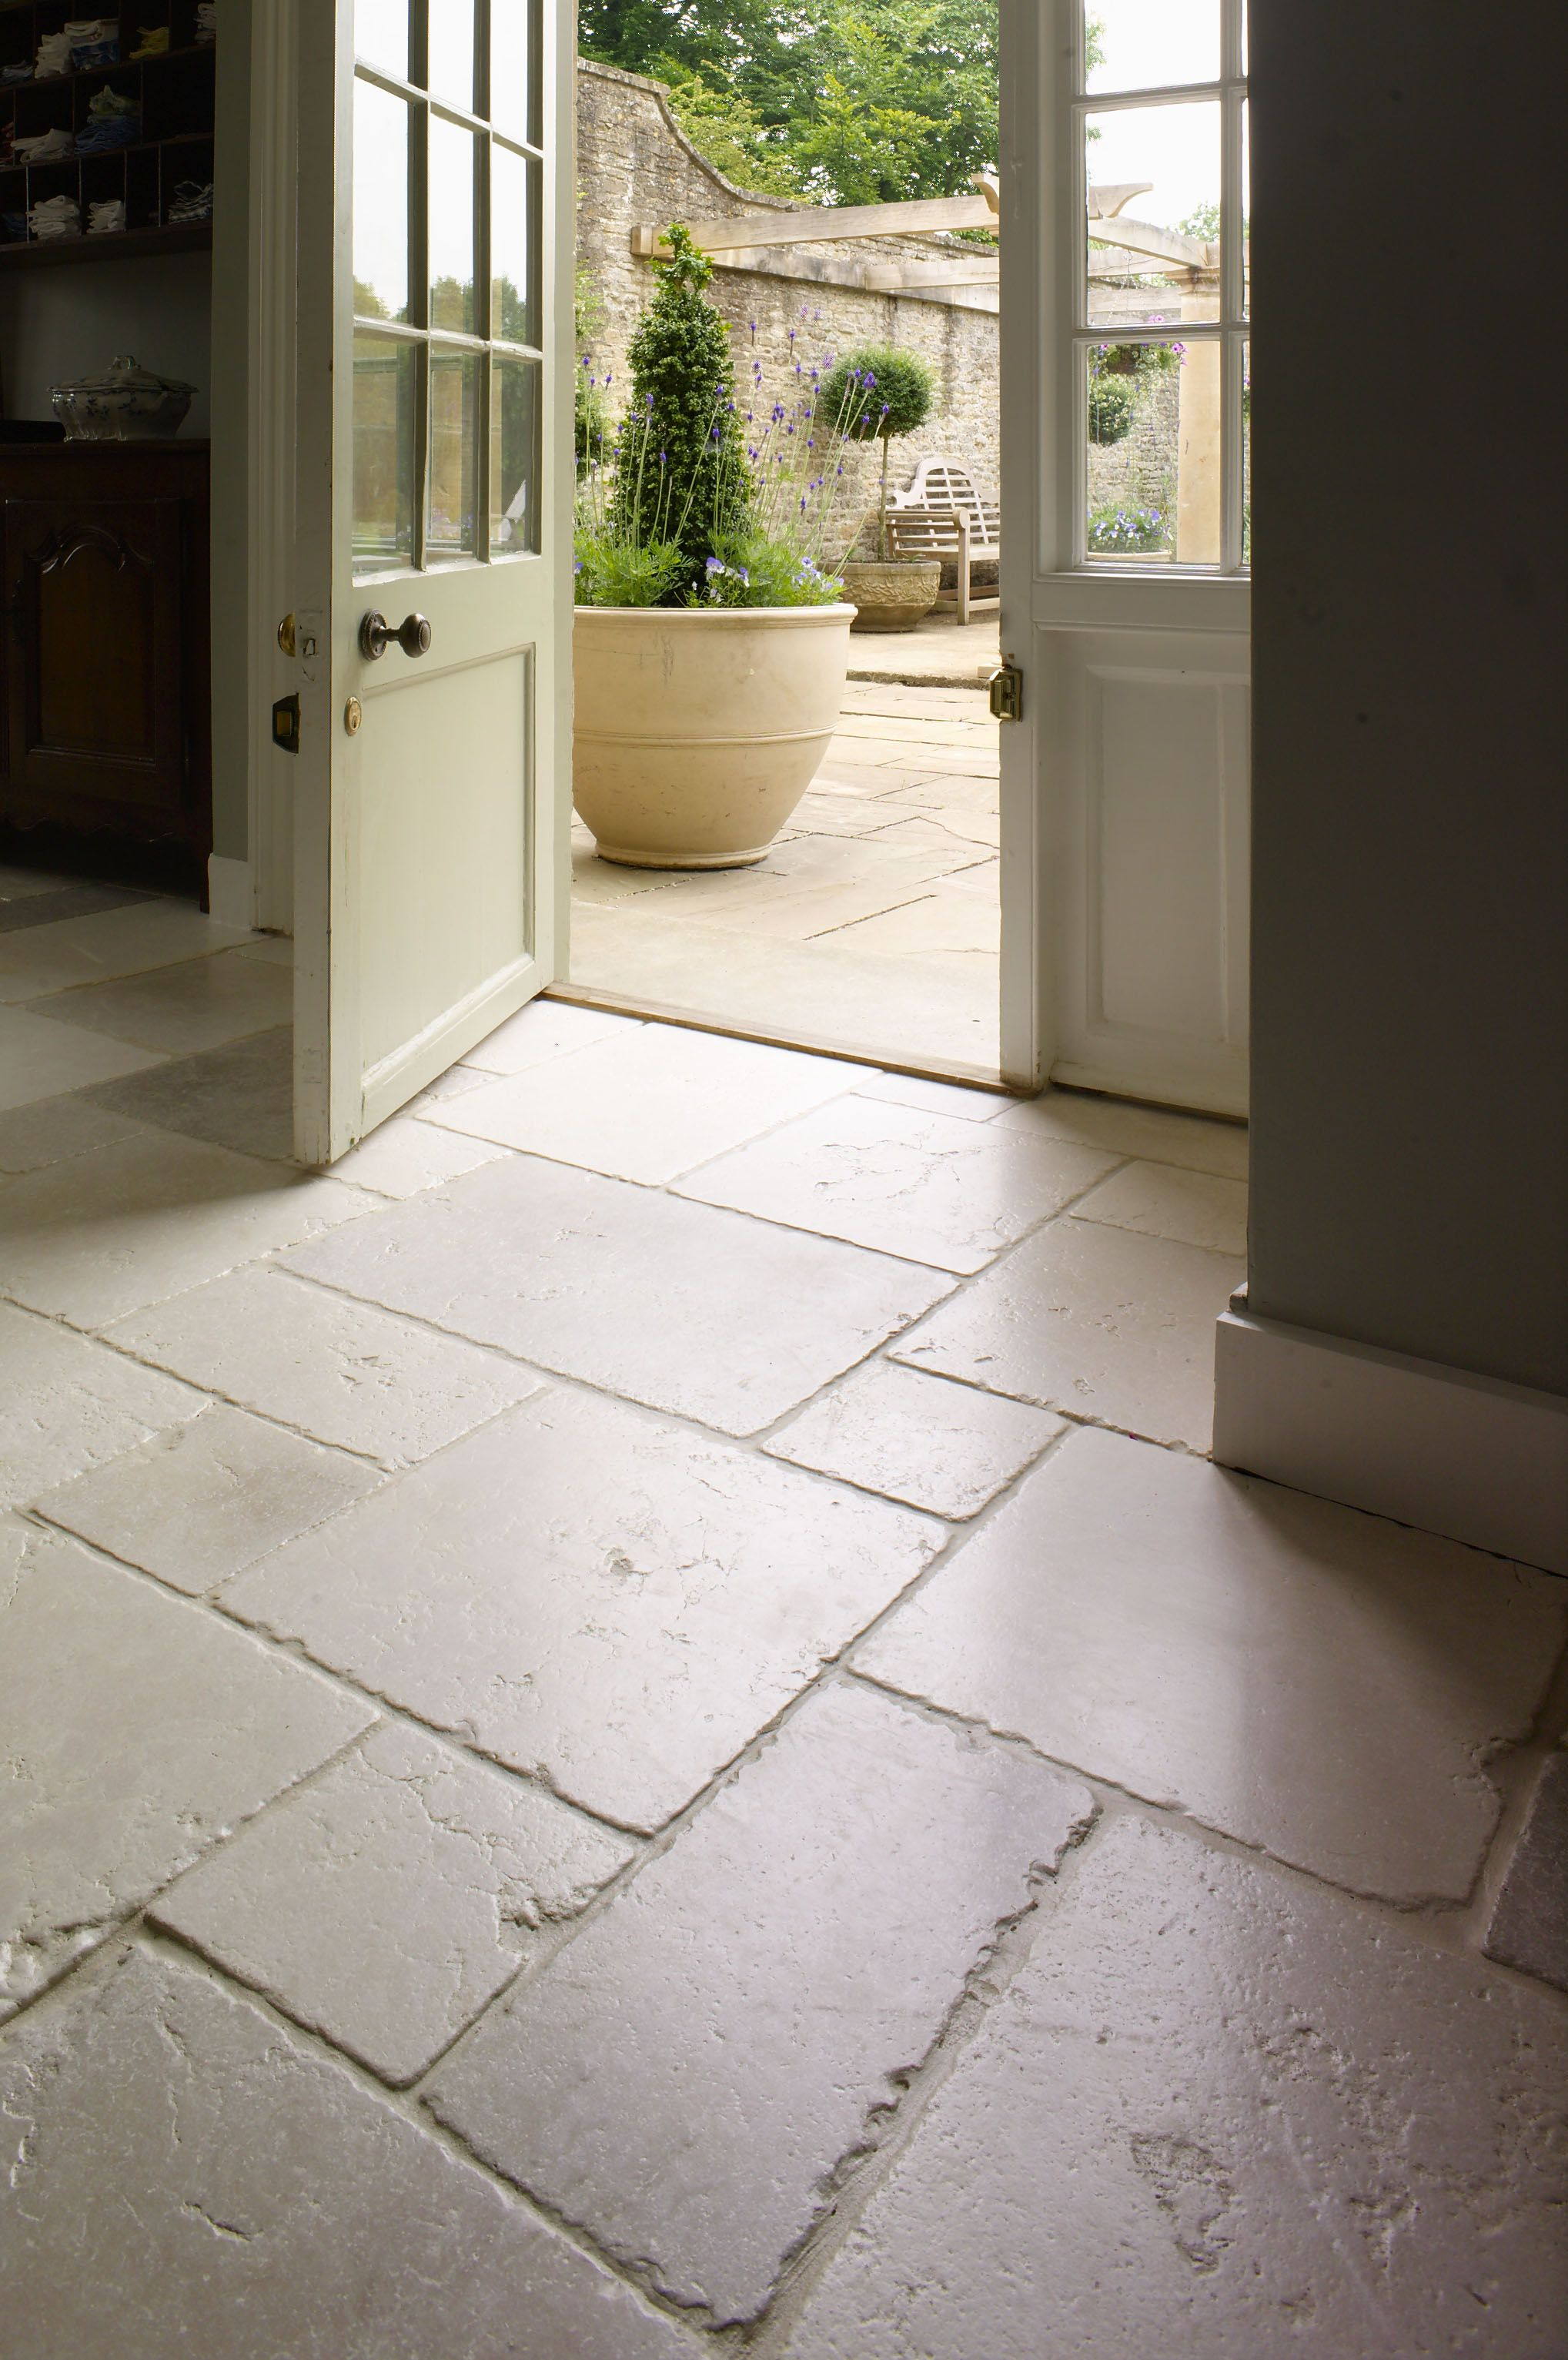 ST ARBOIS TUMBLED LIMESTONE Beautifully aged  A stylish and popular     A stylish and popular tumbled Limestone with delicate tones of linen  pale  greys  creams and the occasional blush of pink  Mandarin Stone